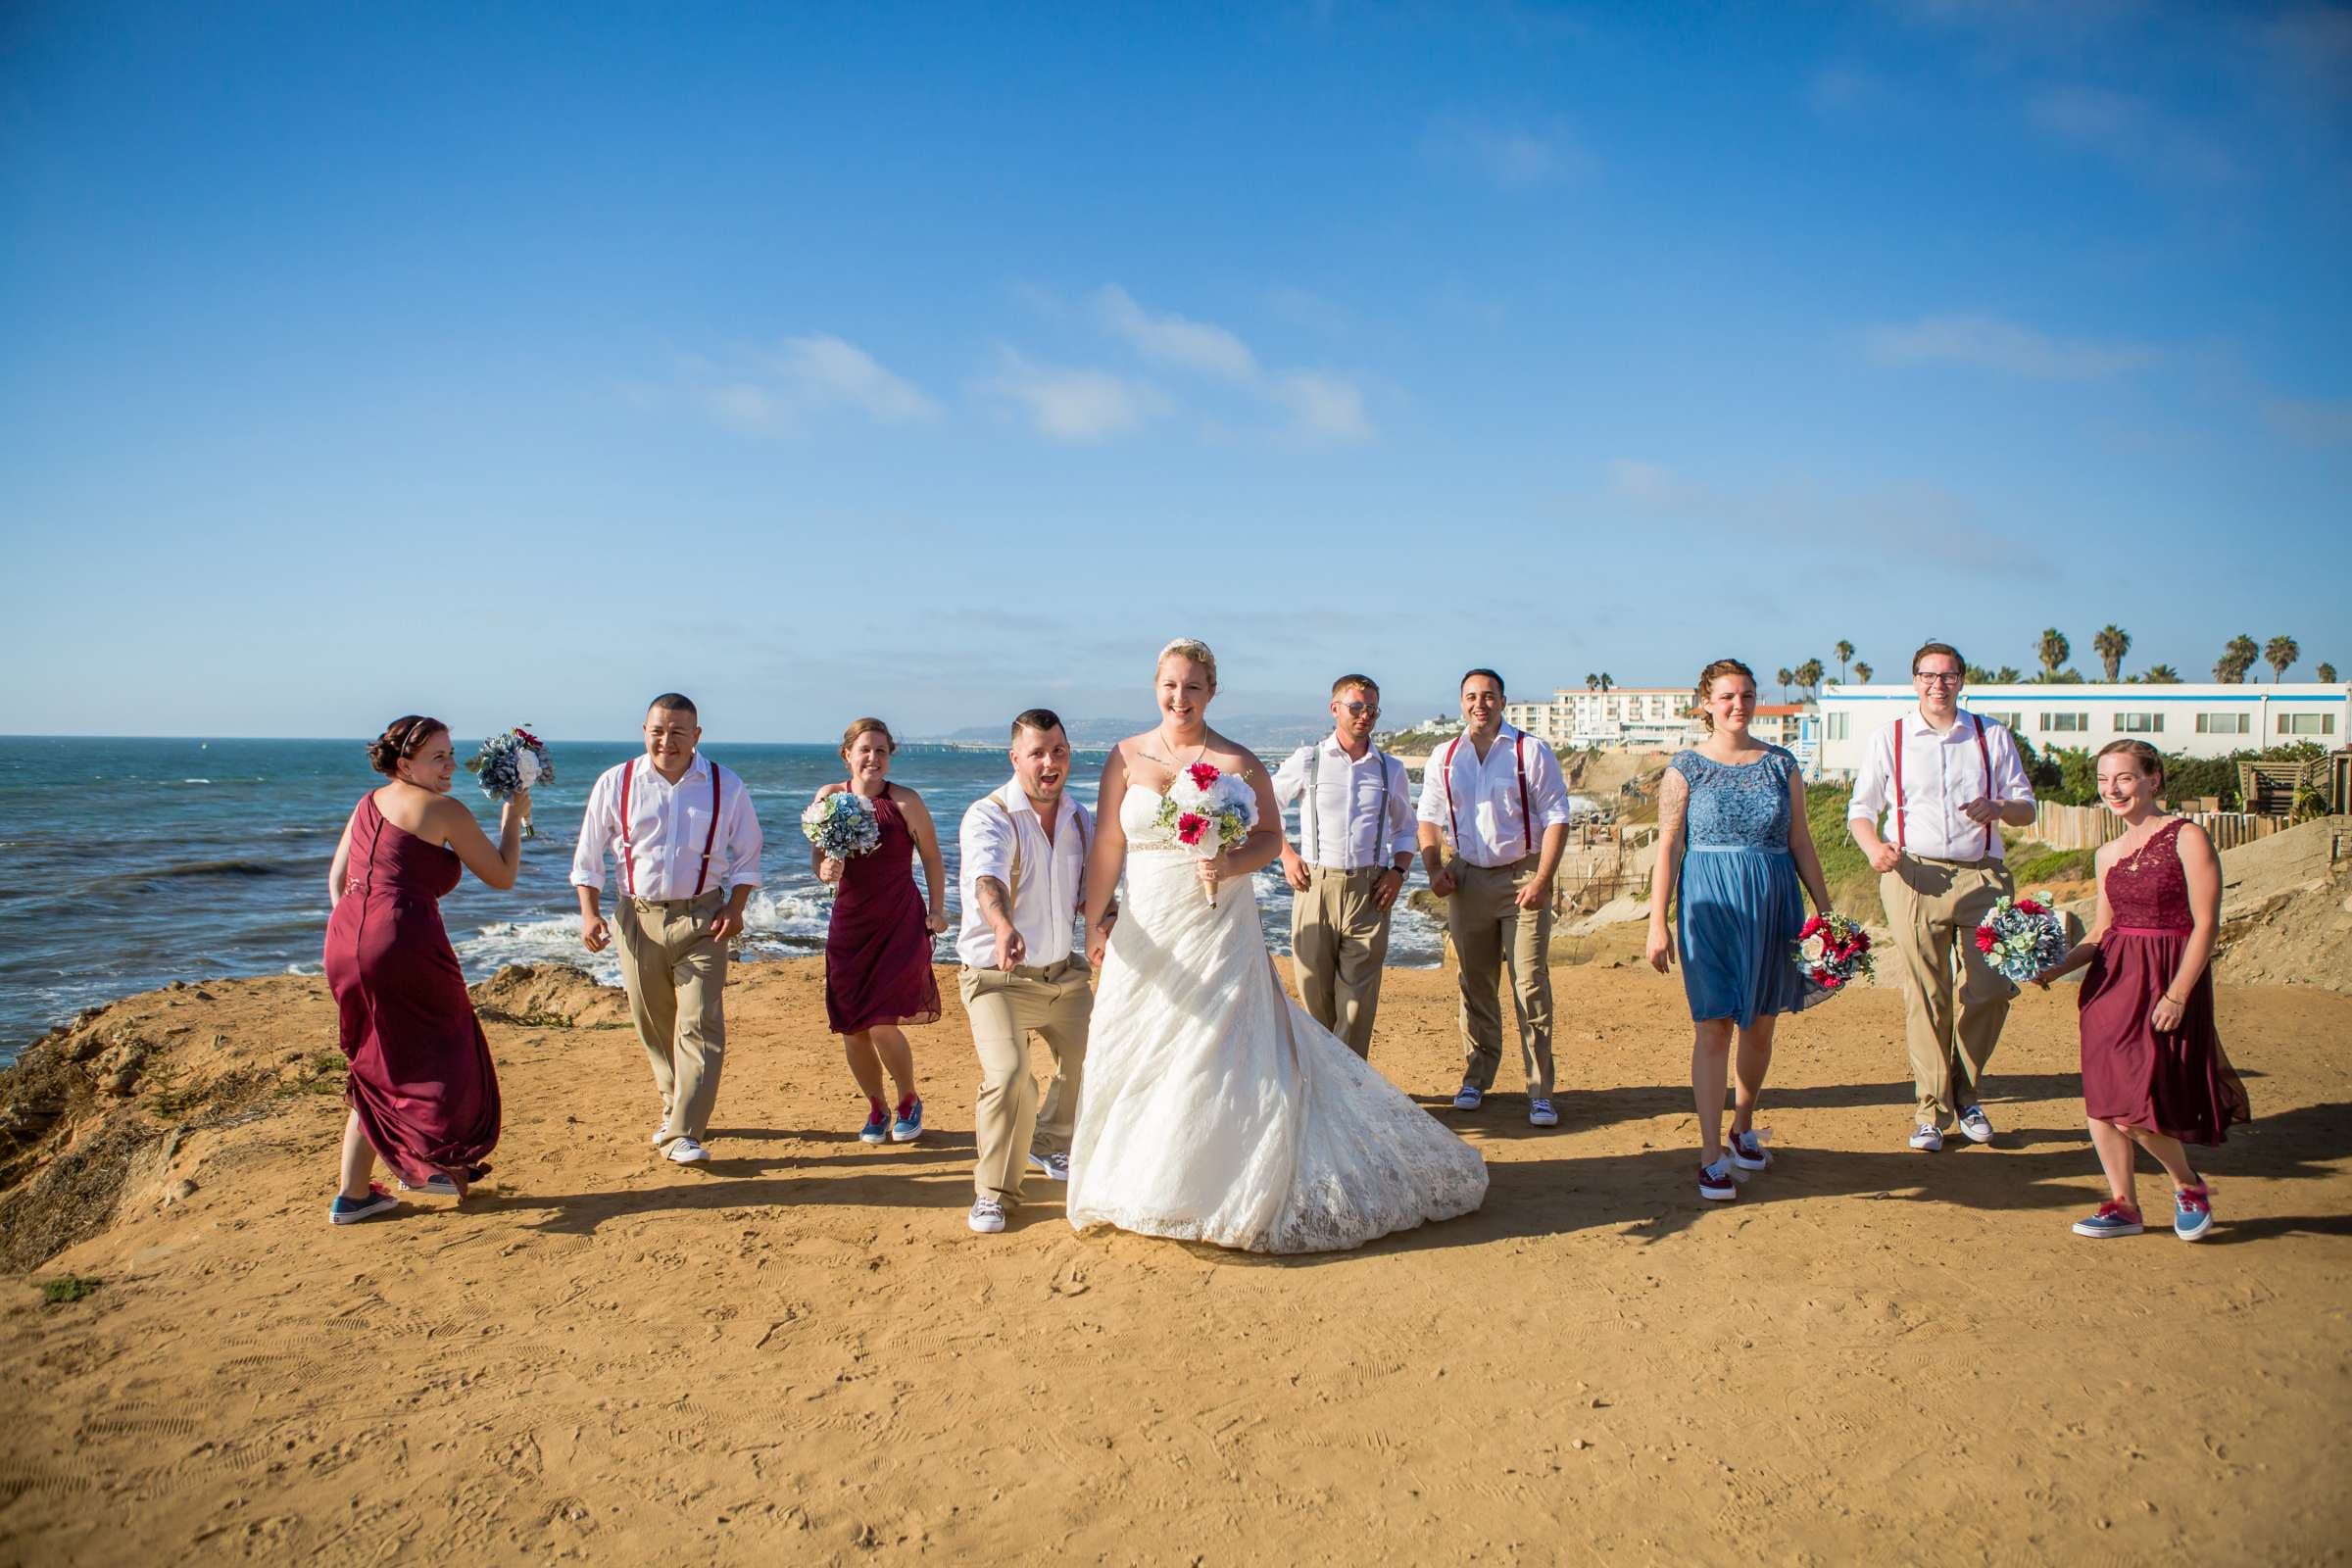 The Inn at Sunset Cliffs Wedding, Melinda and Benjamin Wedding Photo #79 by True Photography